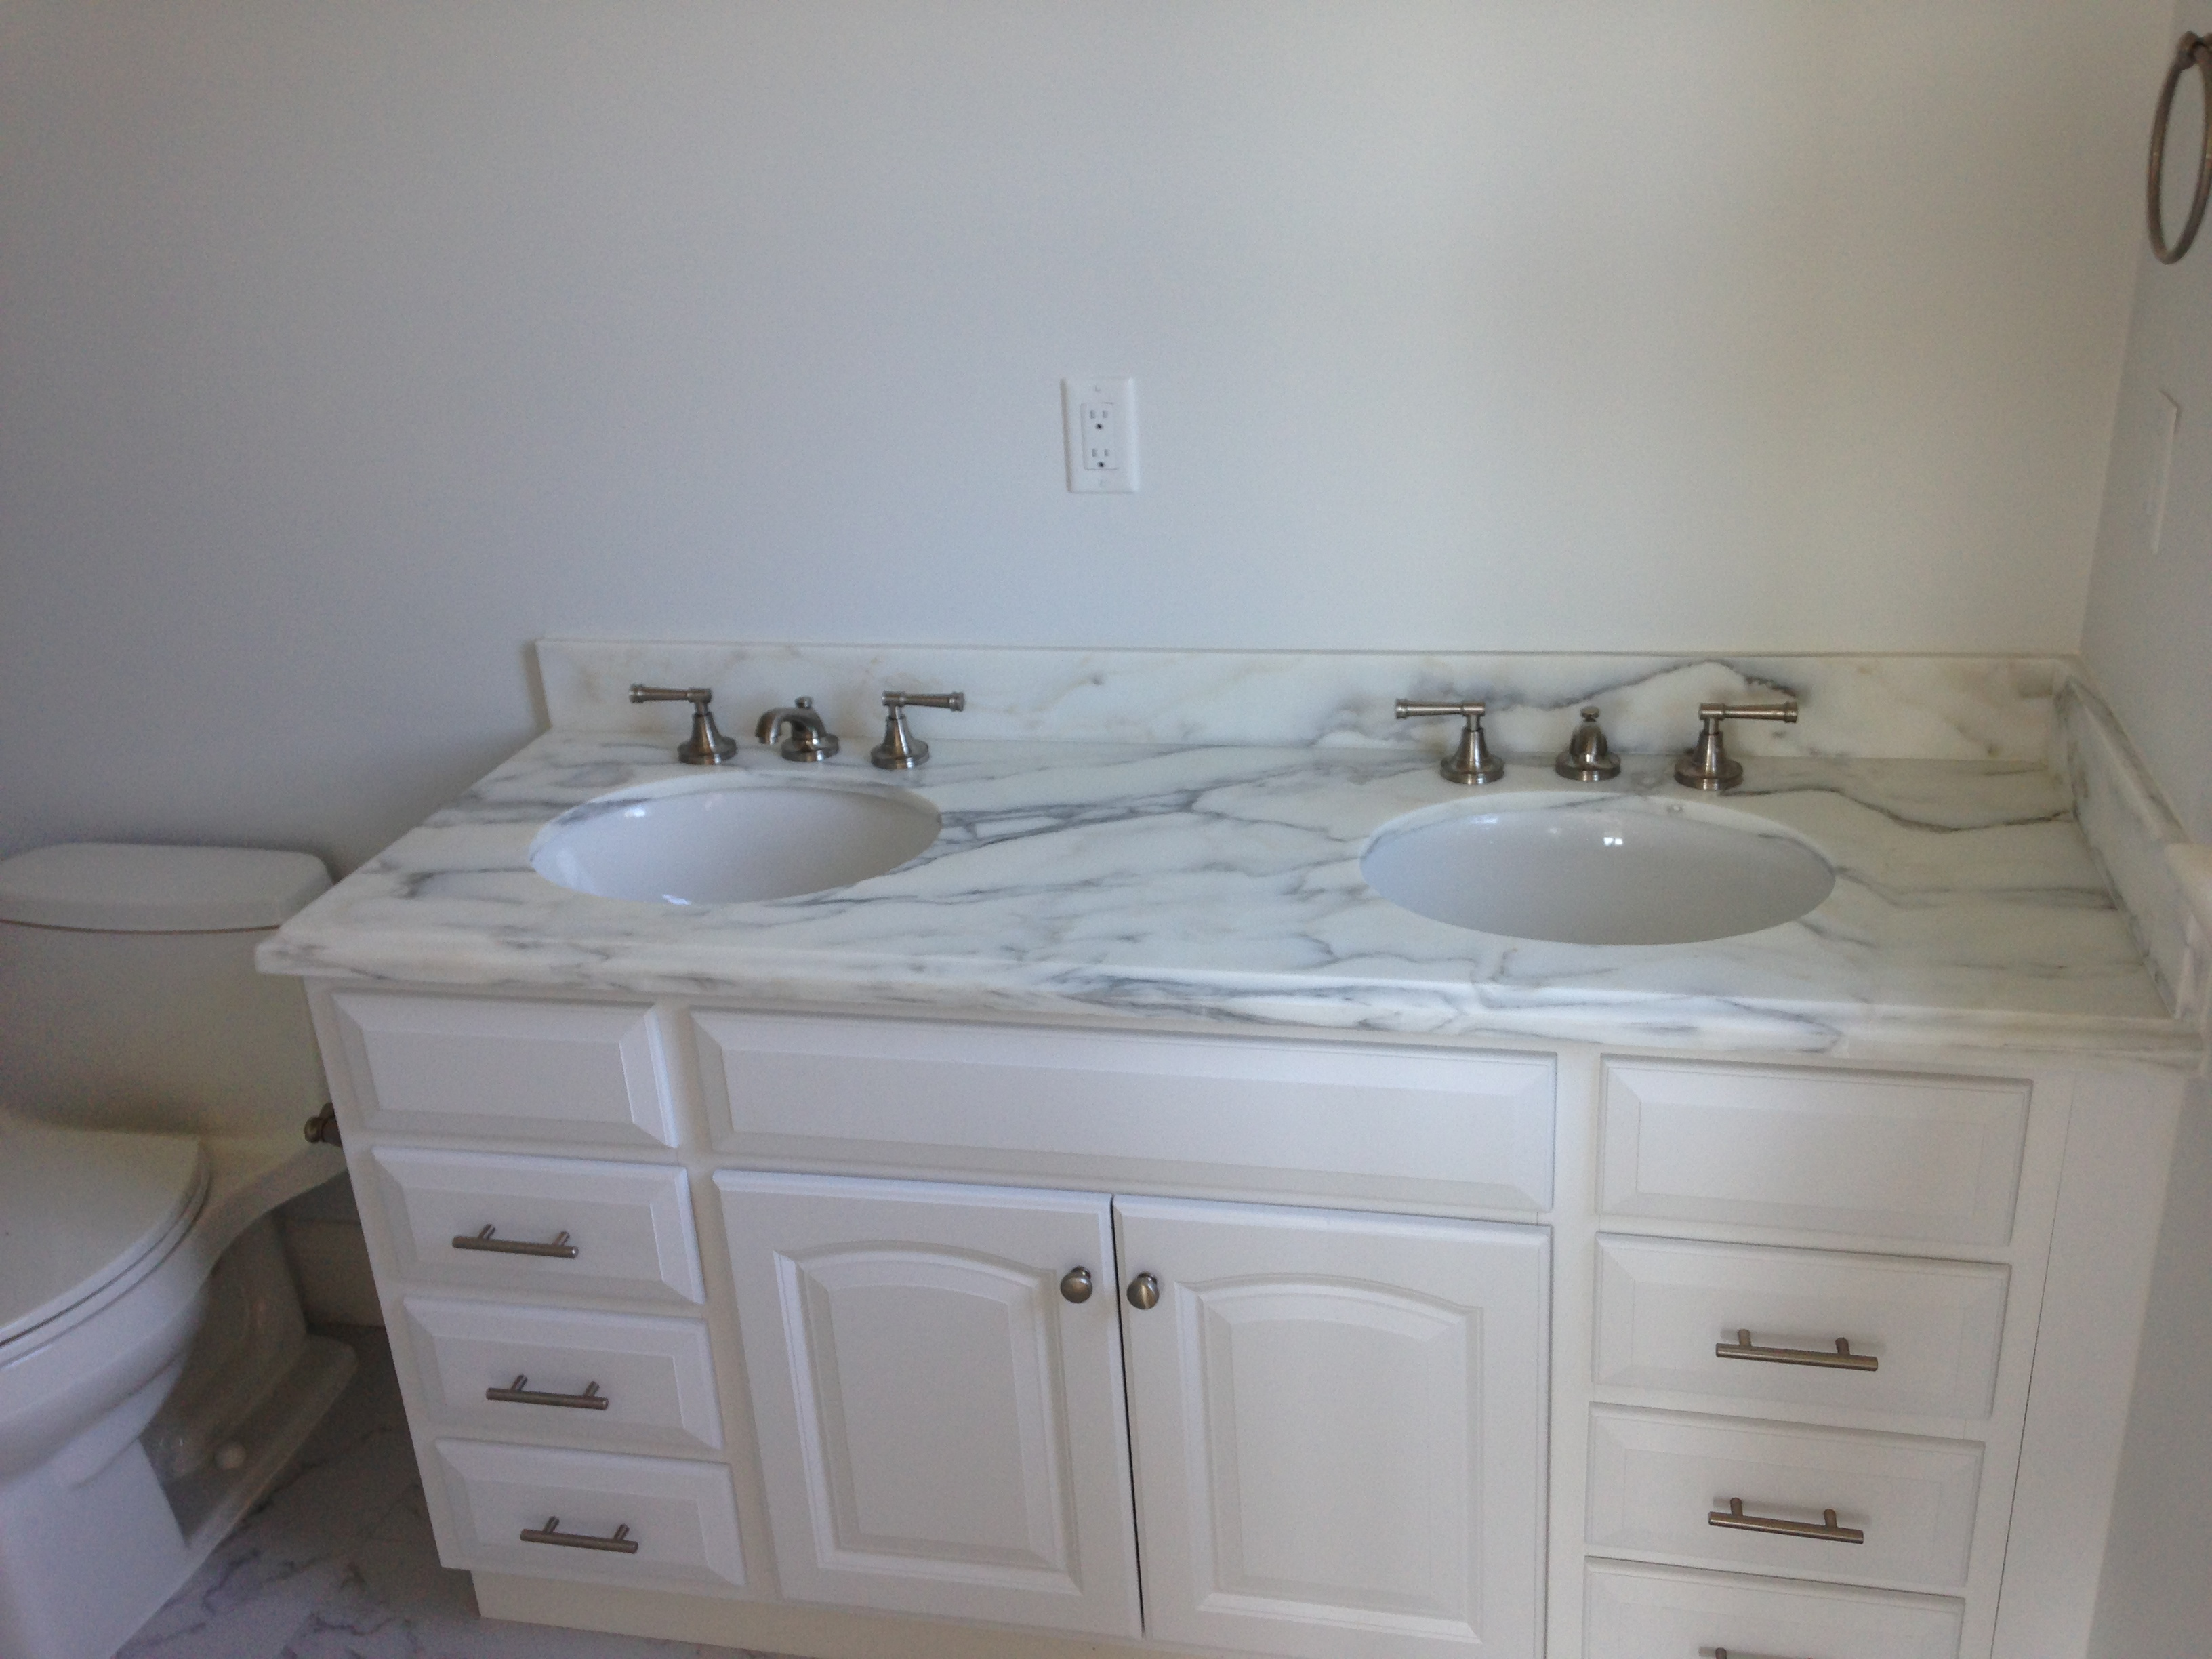 Marble vanity counter tops